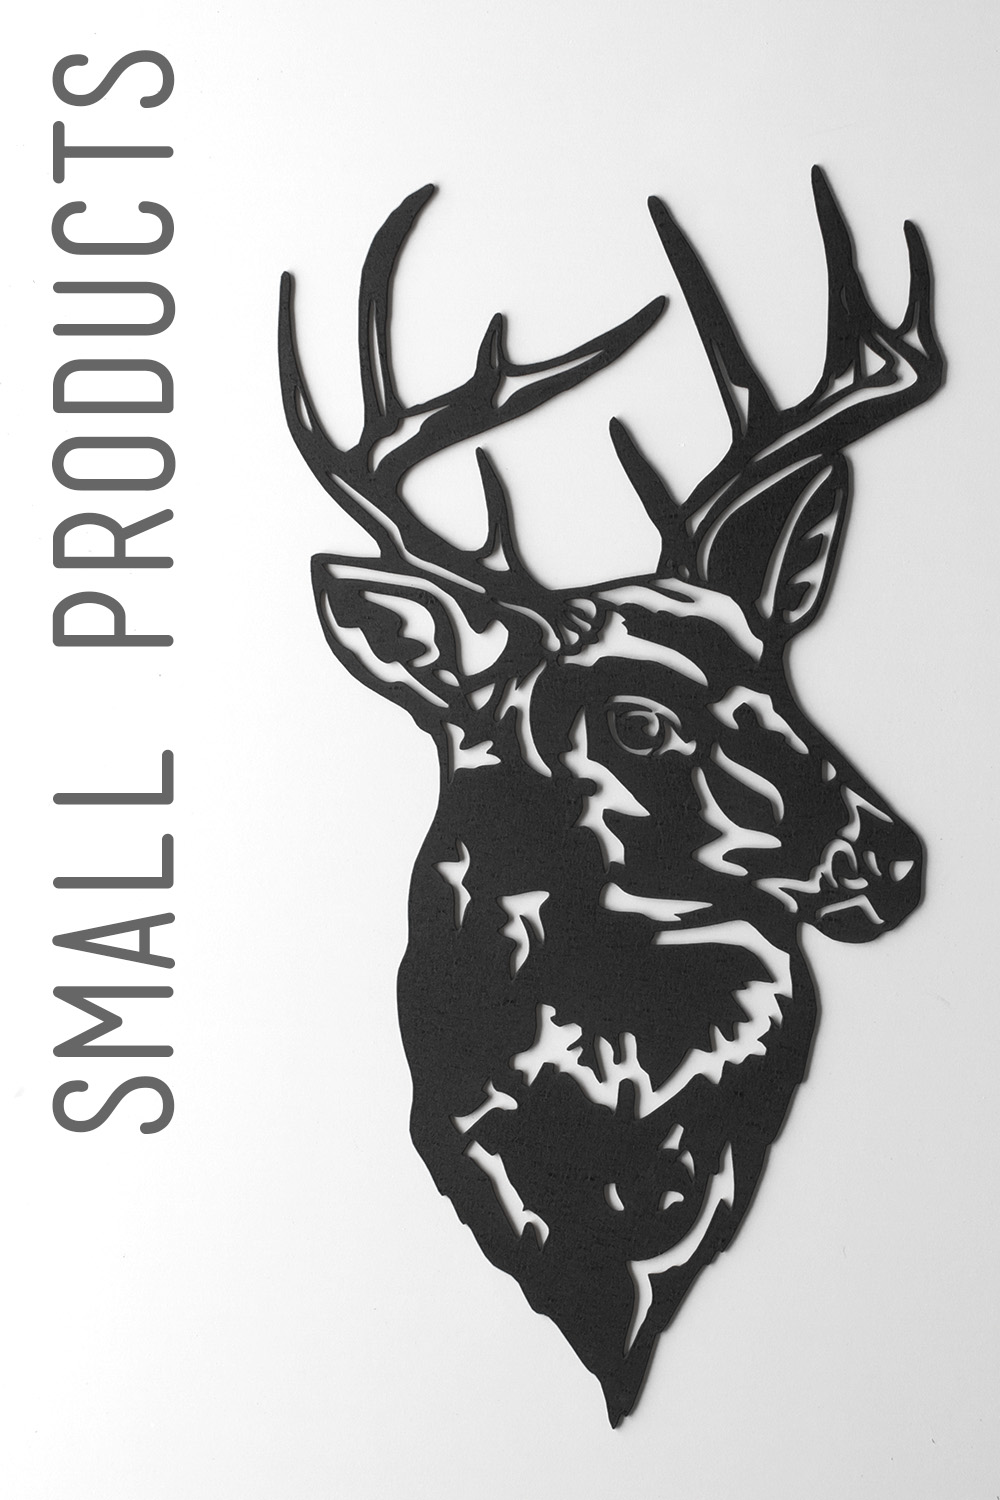 small products.jpg